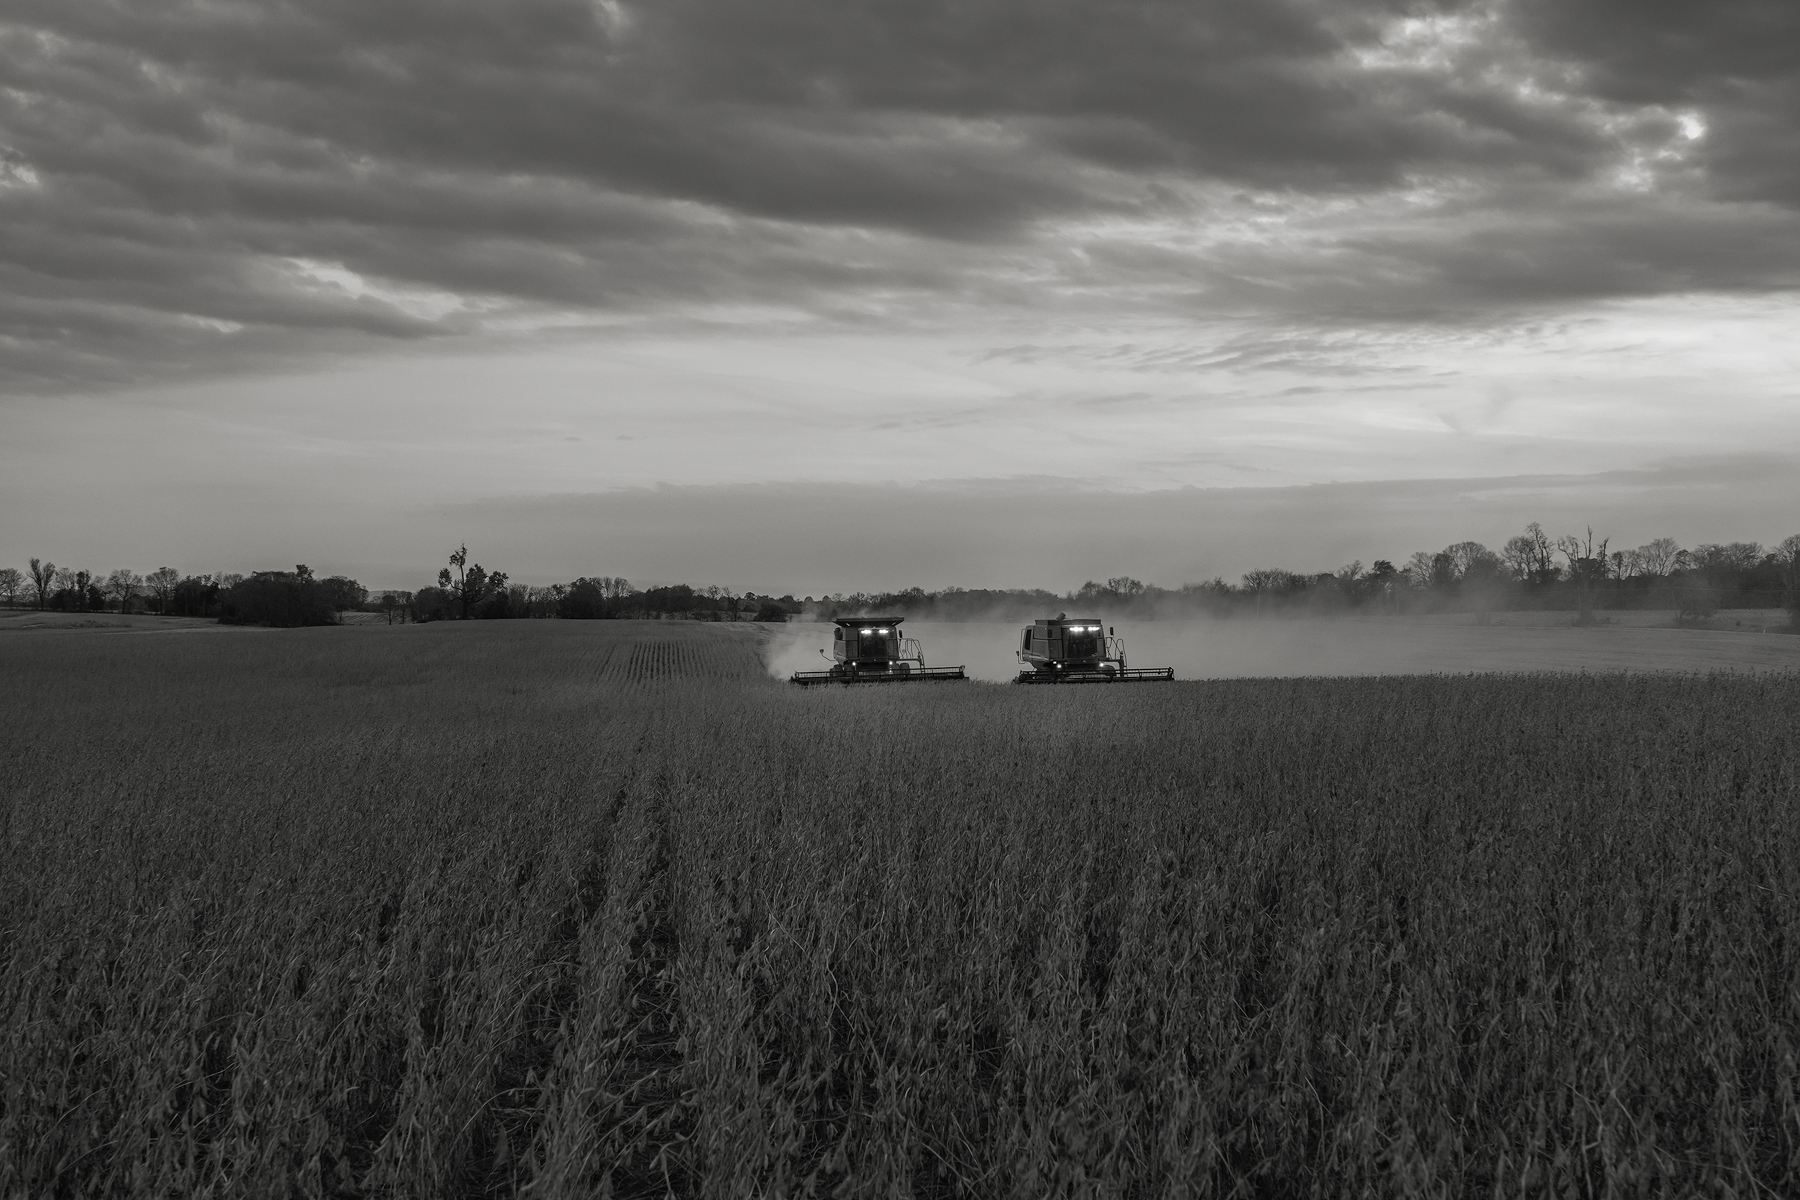 Dueling combines work under a darkening sky.Fuji X-T2 and a Fujinon XF16-55mm f2.8 WR at 55mm. Image exposed at ISO 800 at f4 for 1/60 of a second.